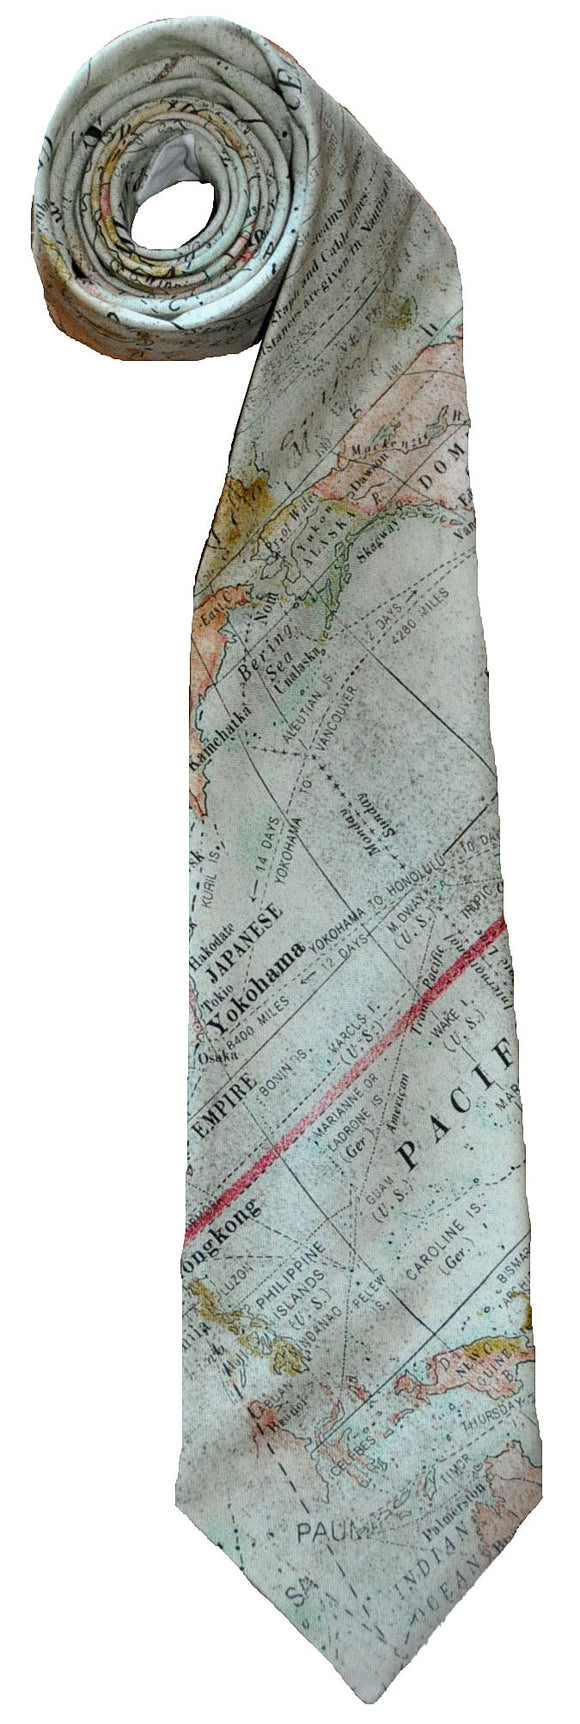 Map Tie - Handmade Men's Necktie